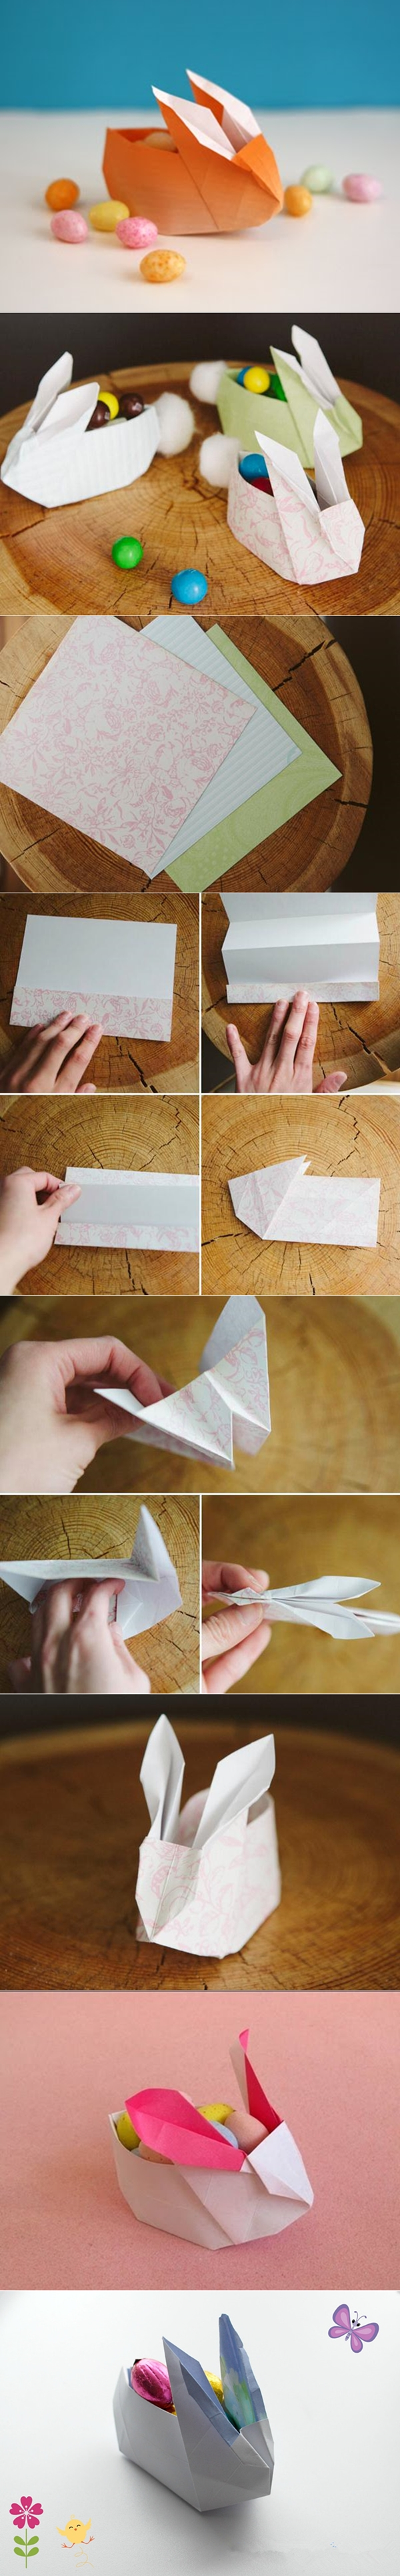 origami-bunny-box tutorial